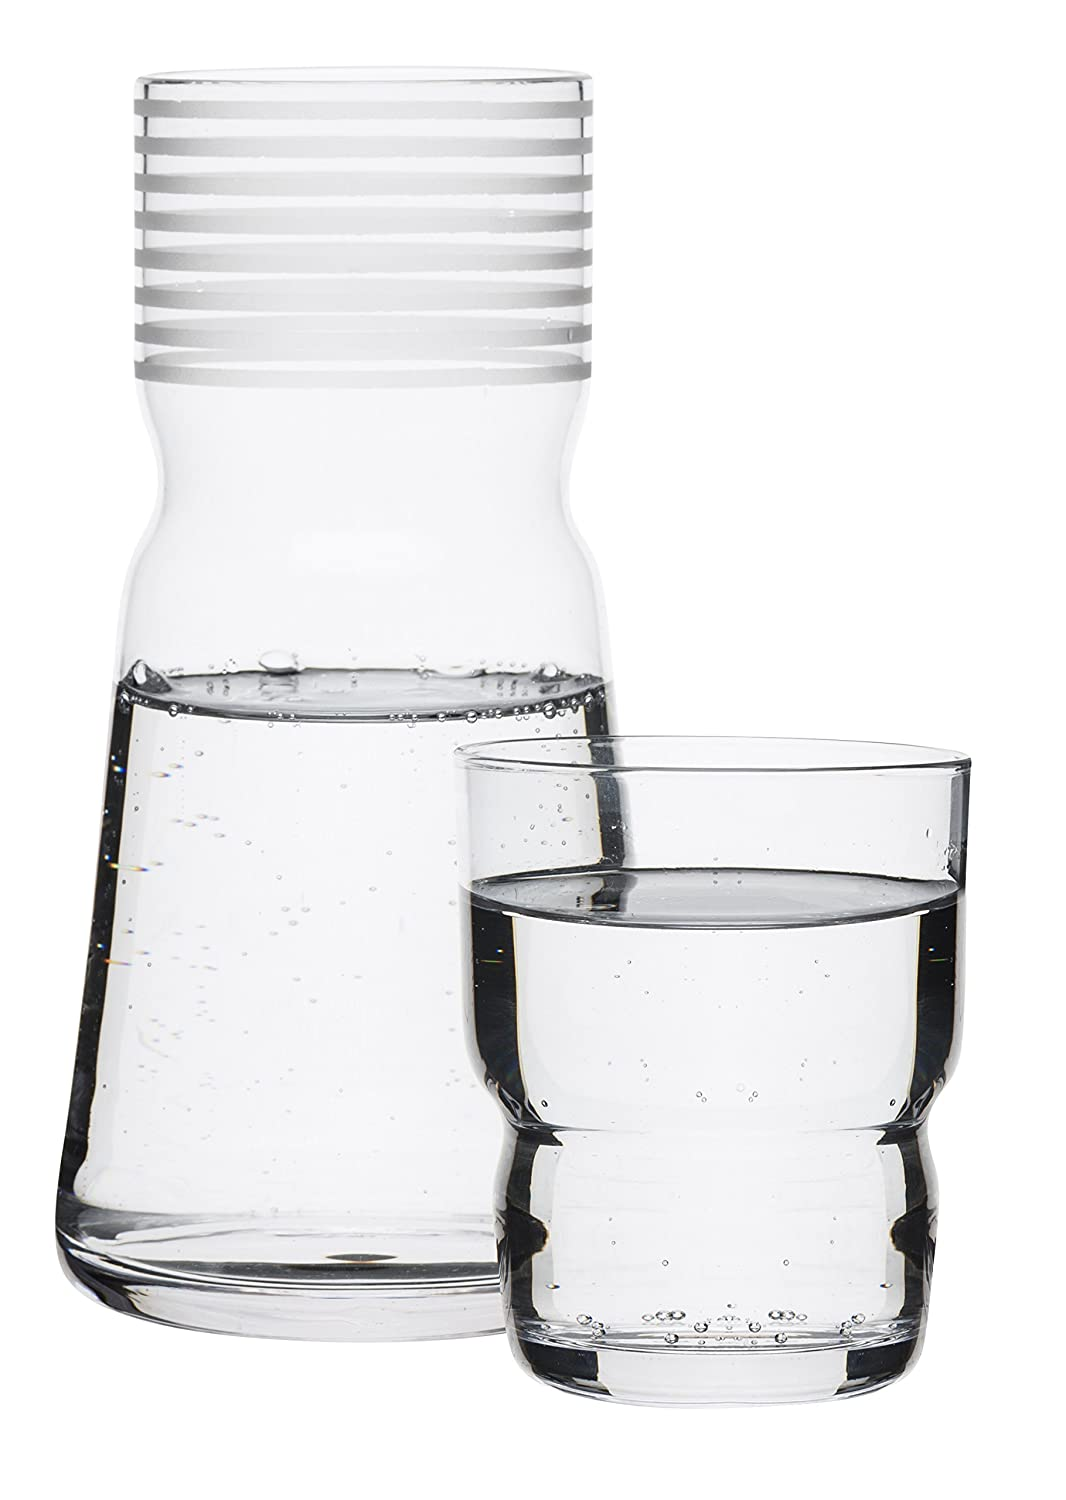 Sagaform Glass carafe with drinking glass